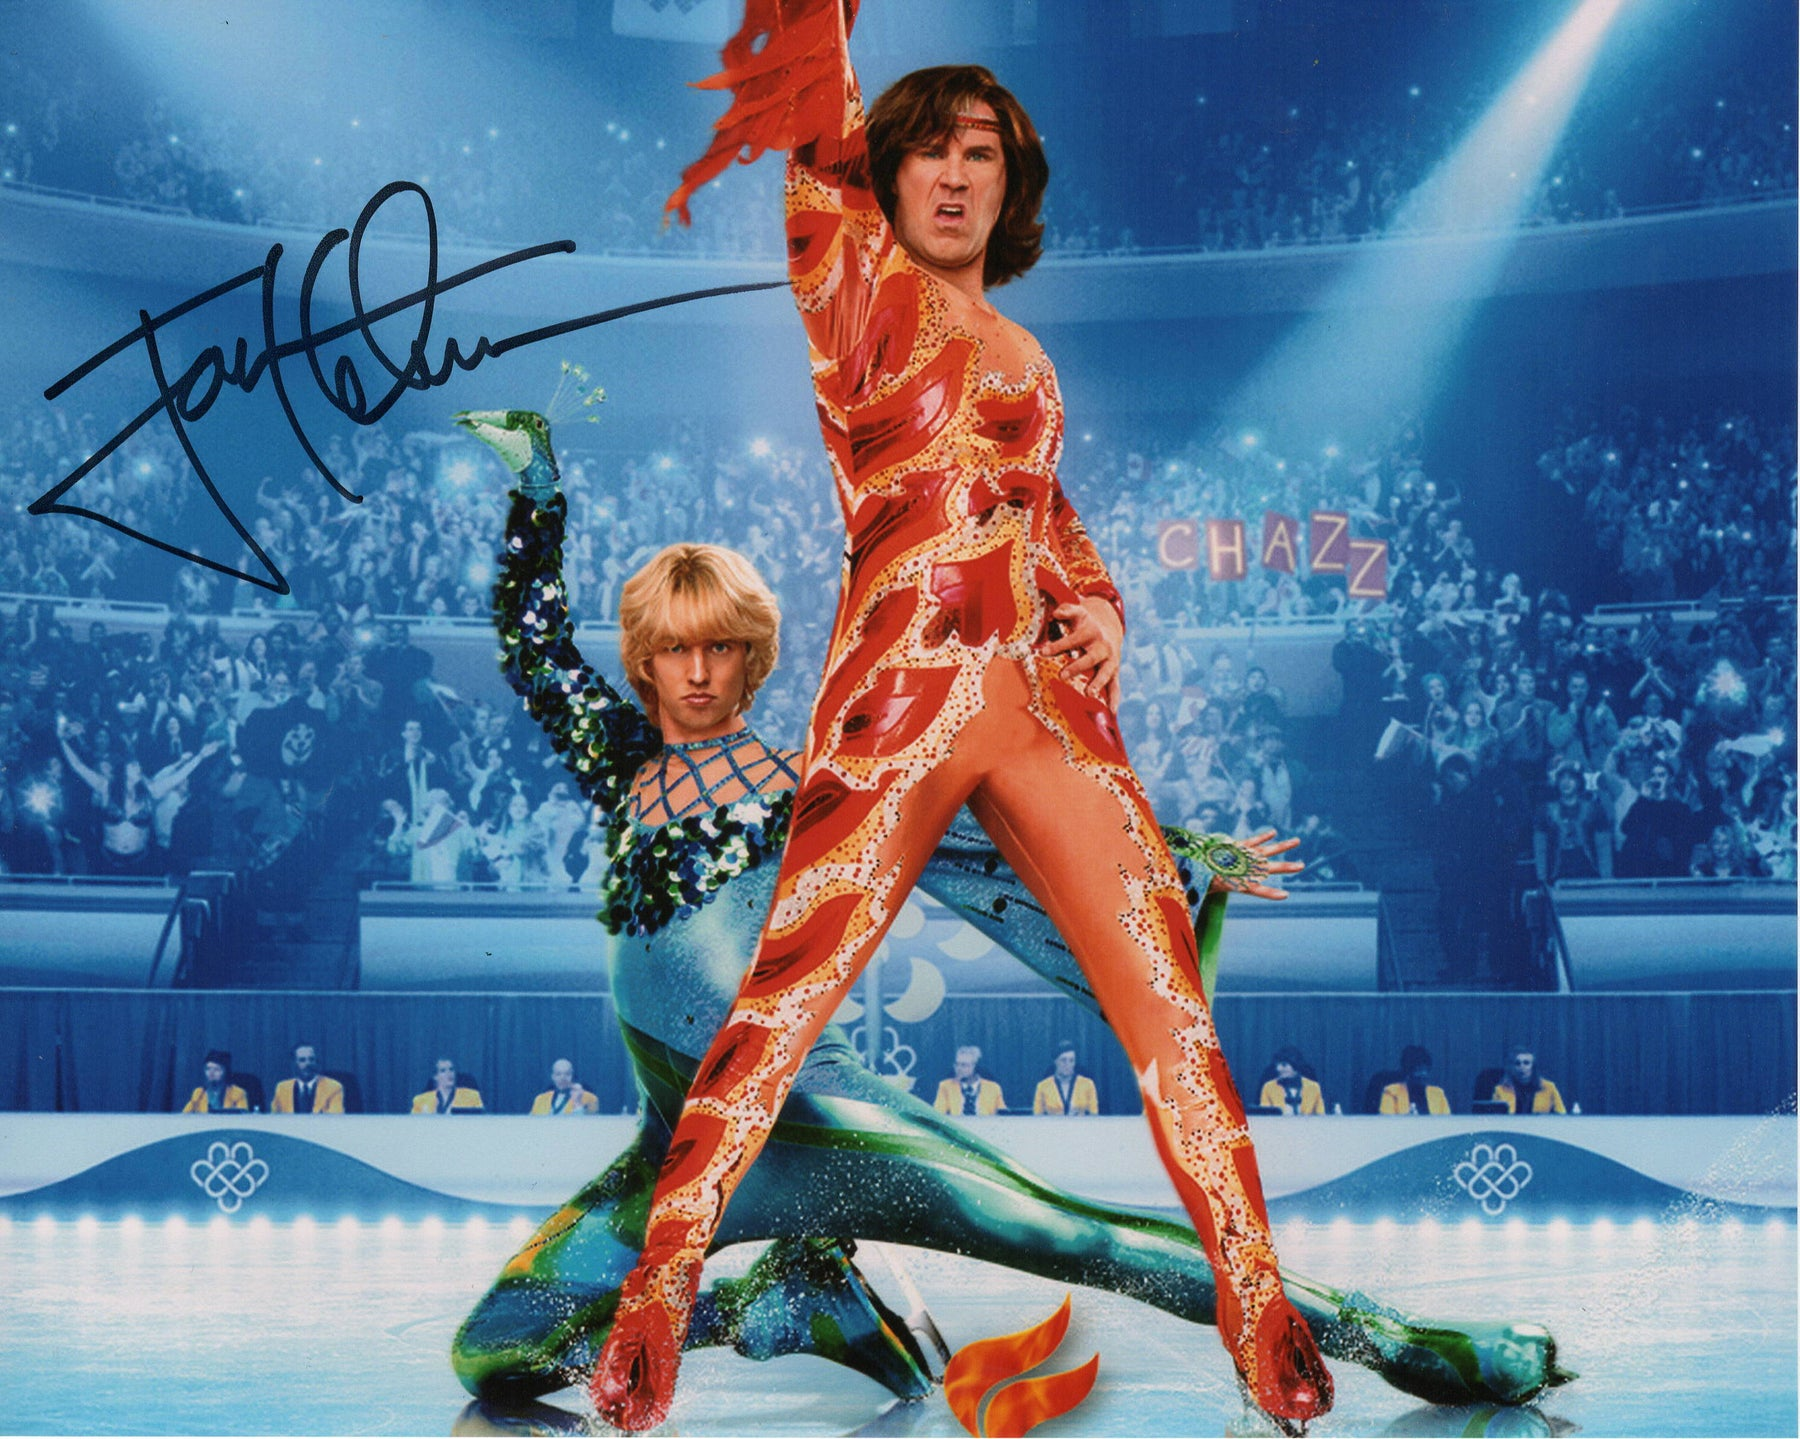 Jon Heder Autograph 8x10 Blades of Glory Photo Jimmy MacElroy Signed JSA COA 2